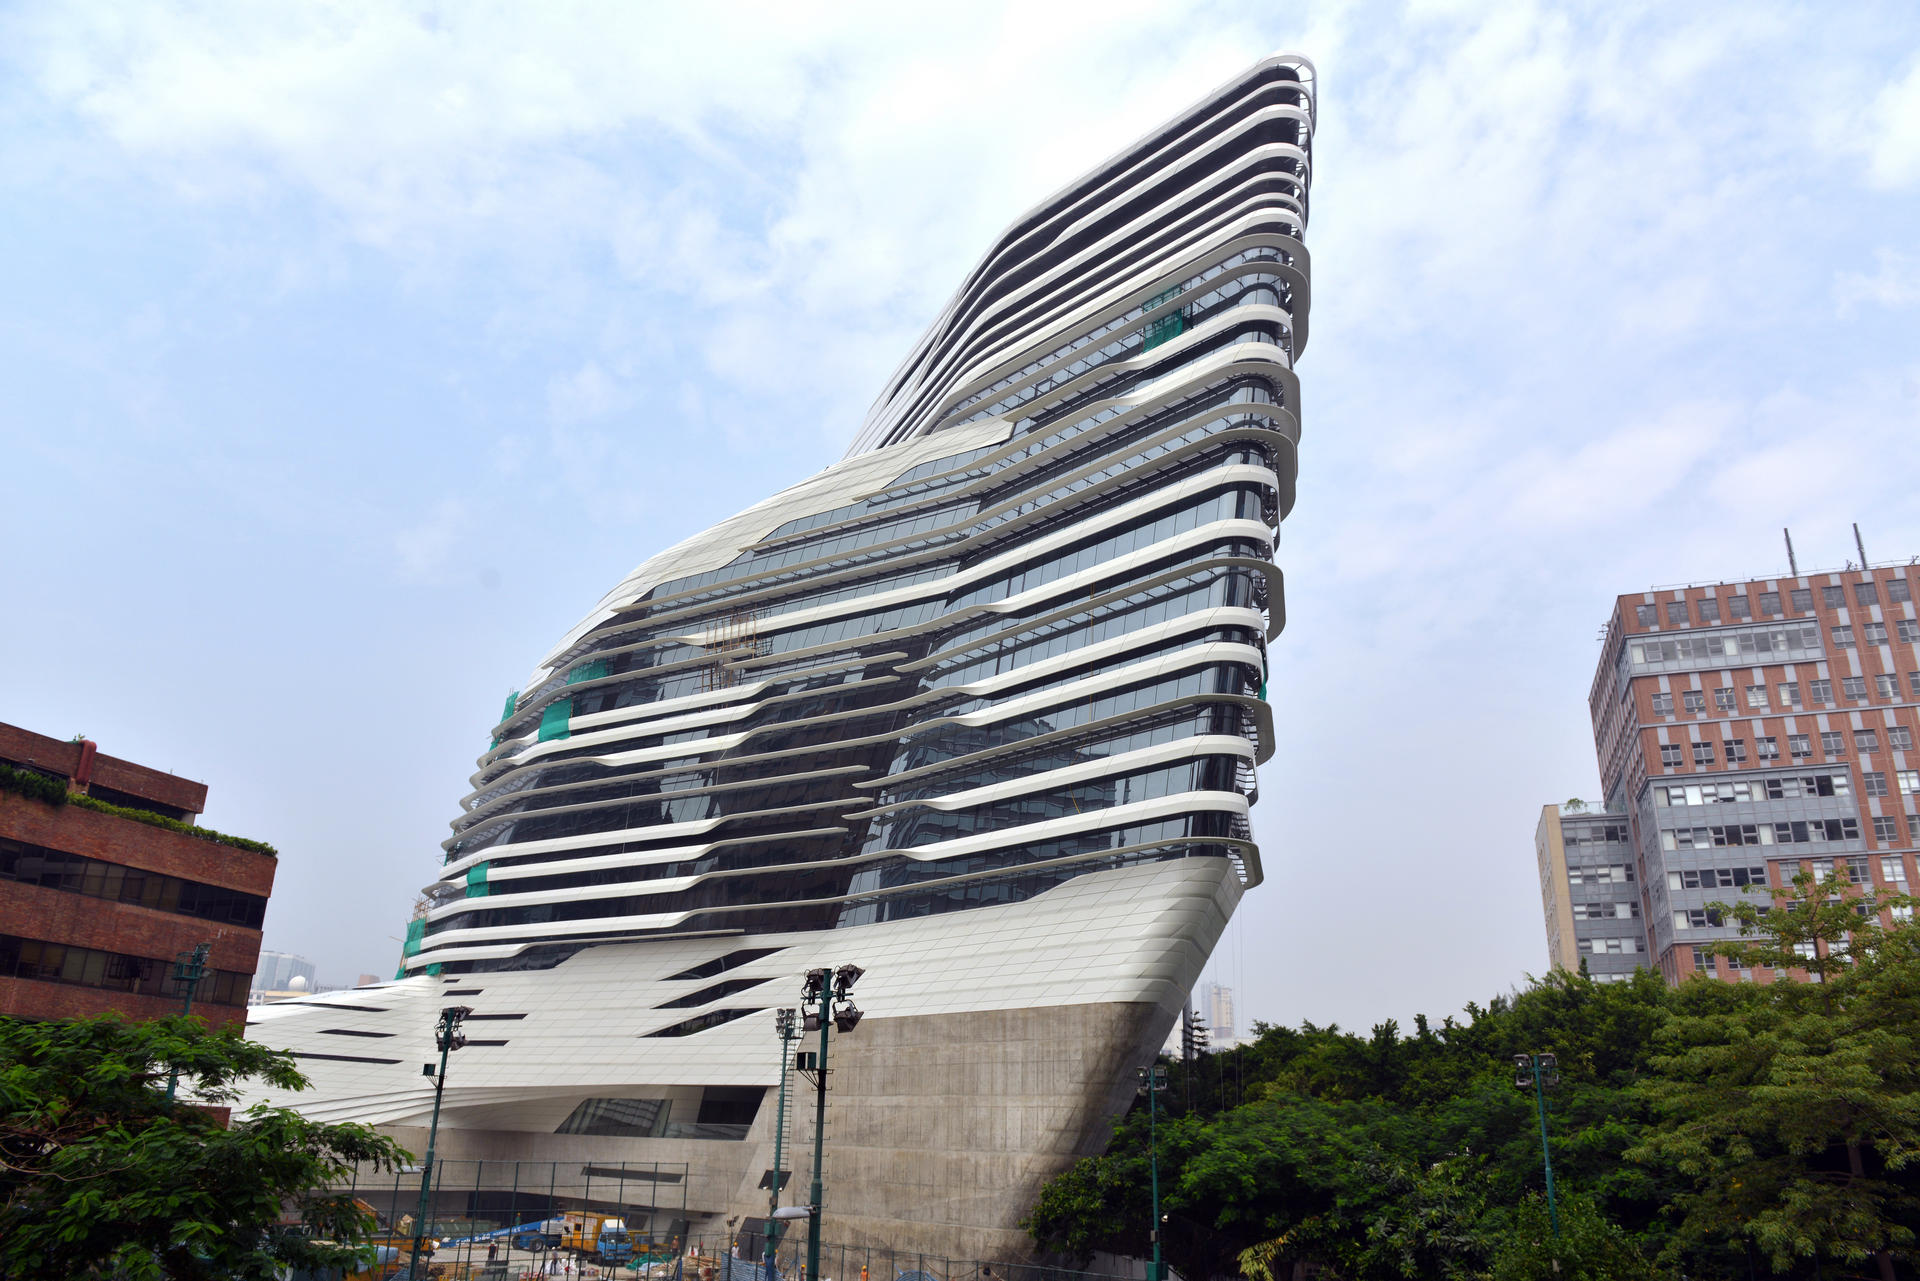 Architect zaha hadid 39 s distinctive style a hit in china for The architect